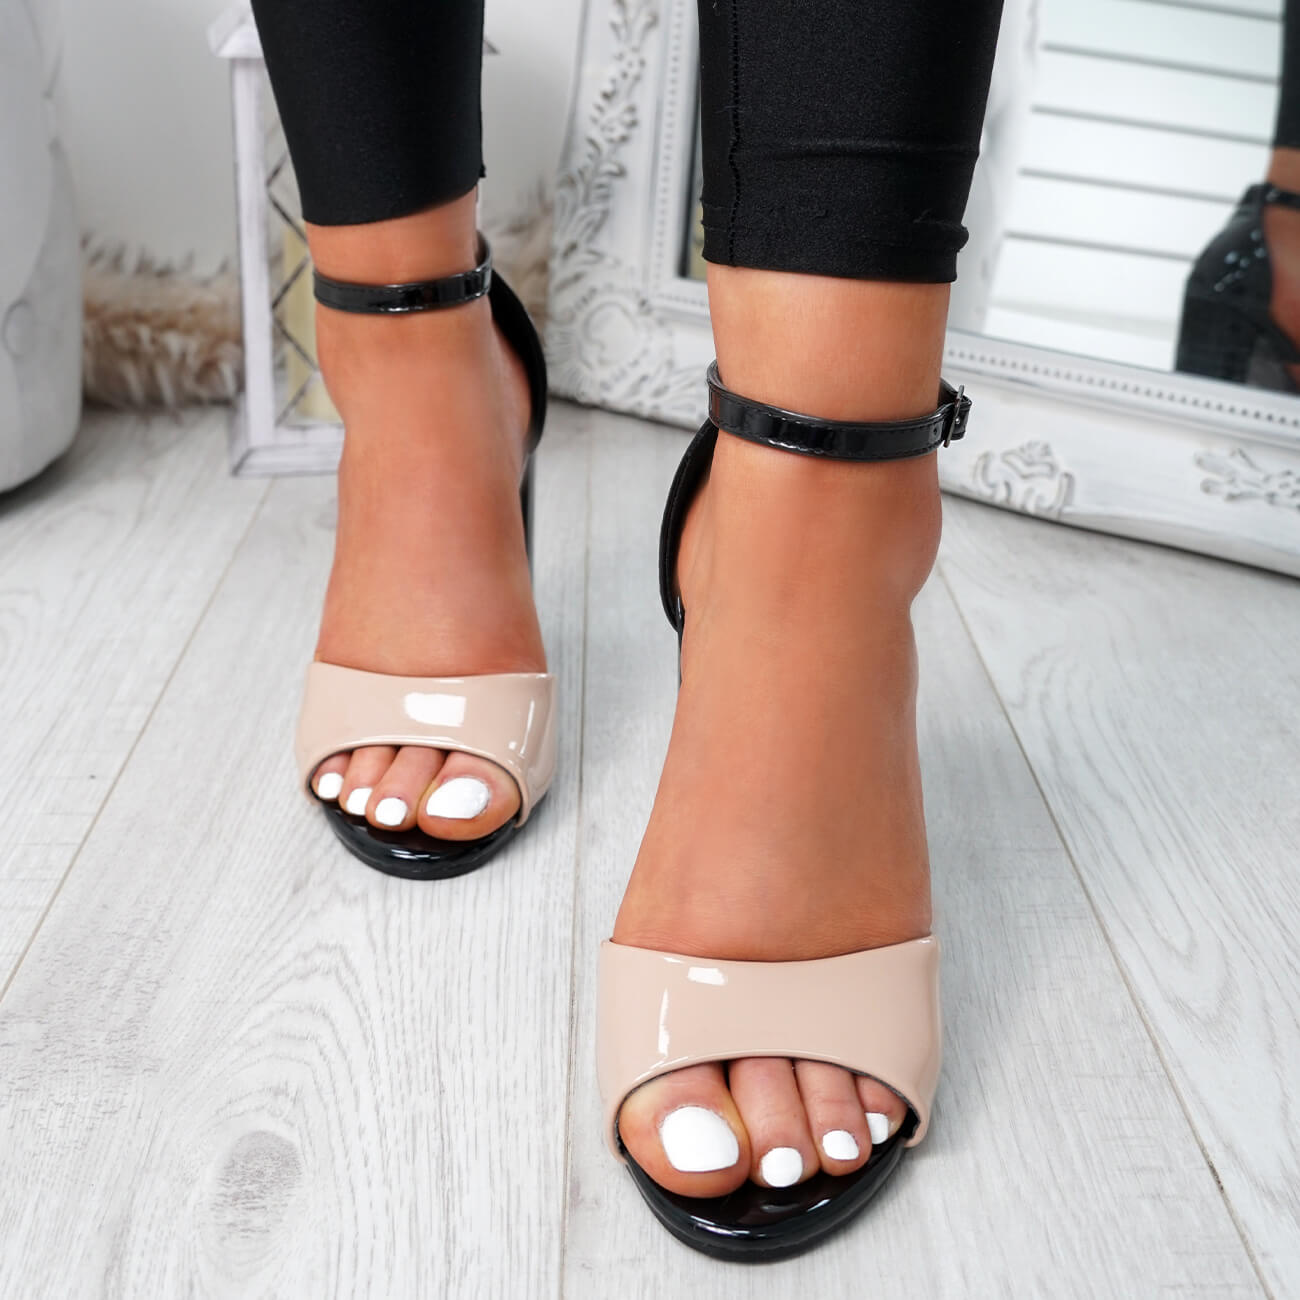 WOMENS-LADIES-ANKLE-STRAP-HIGH-BLOCK-HEEL-SANDALS-PEEP-TOE-OFFICE-CASUAL-SHOES thumbnail 7